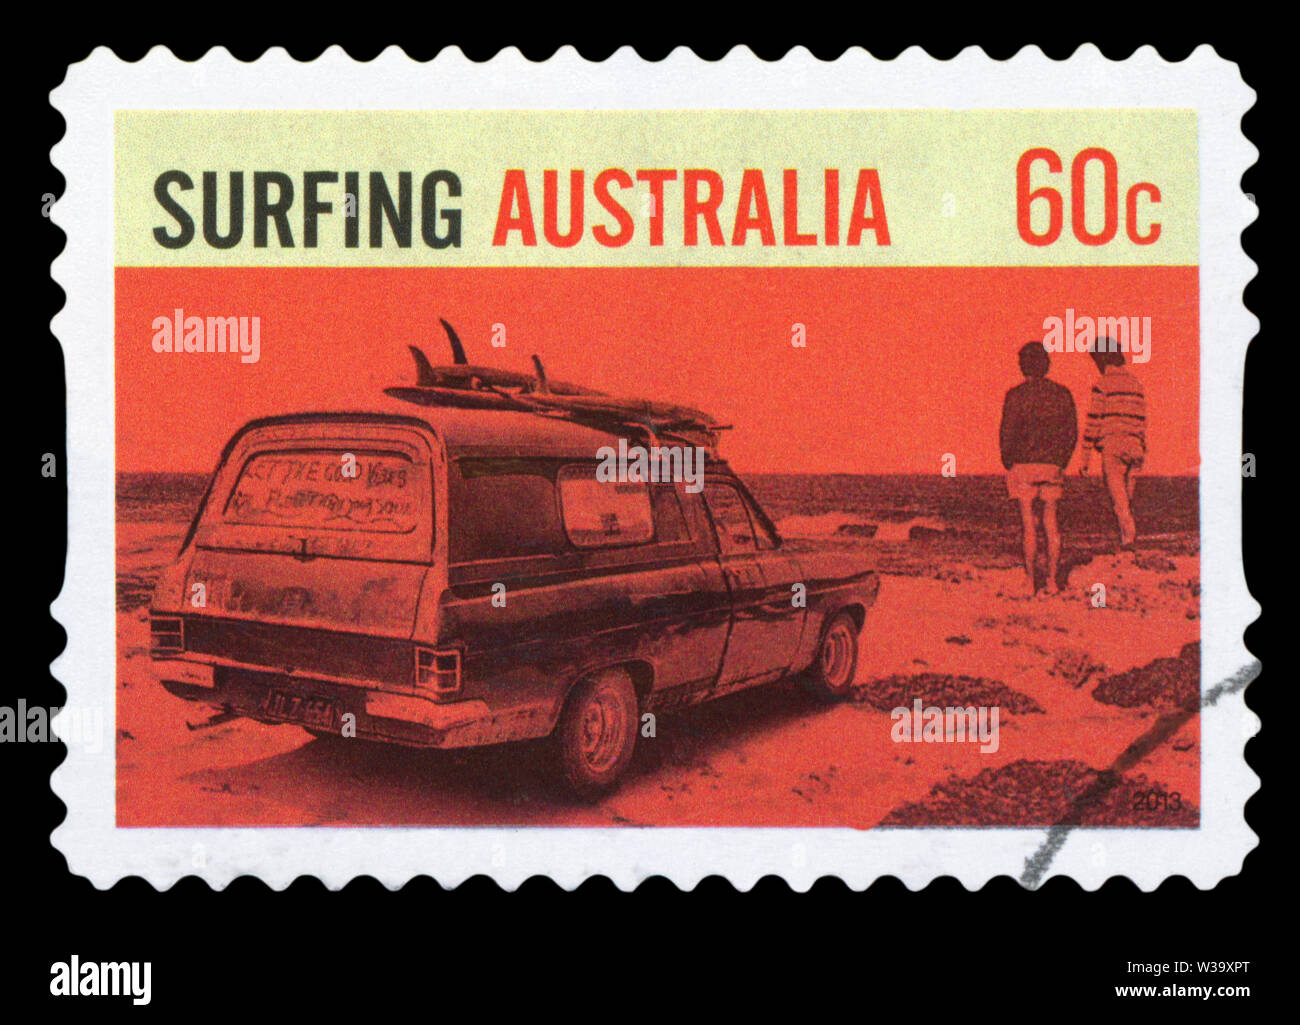 AUSTRALIA - CIRCA 2013: A stamp printed in Australia dedicated to Surfing in Australia, circa 2013. - Stock Image